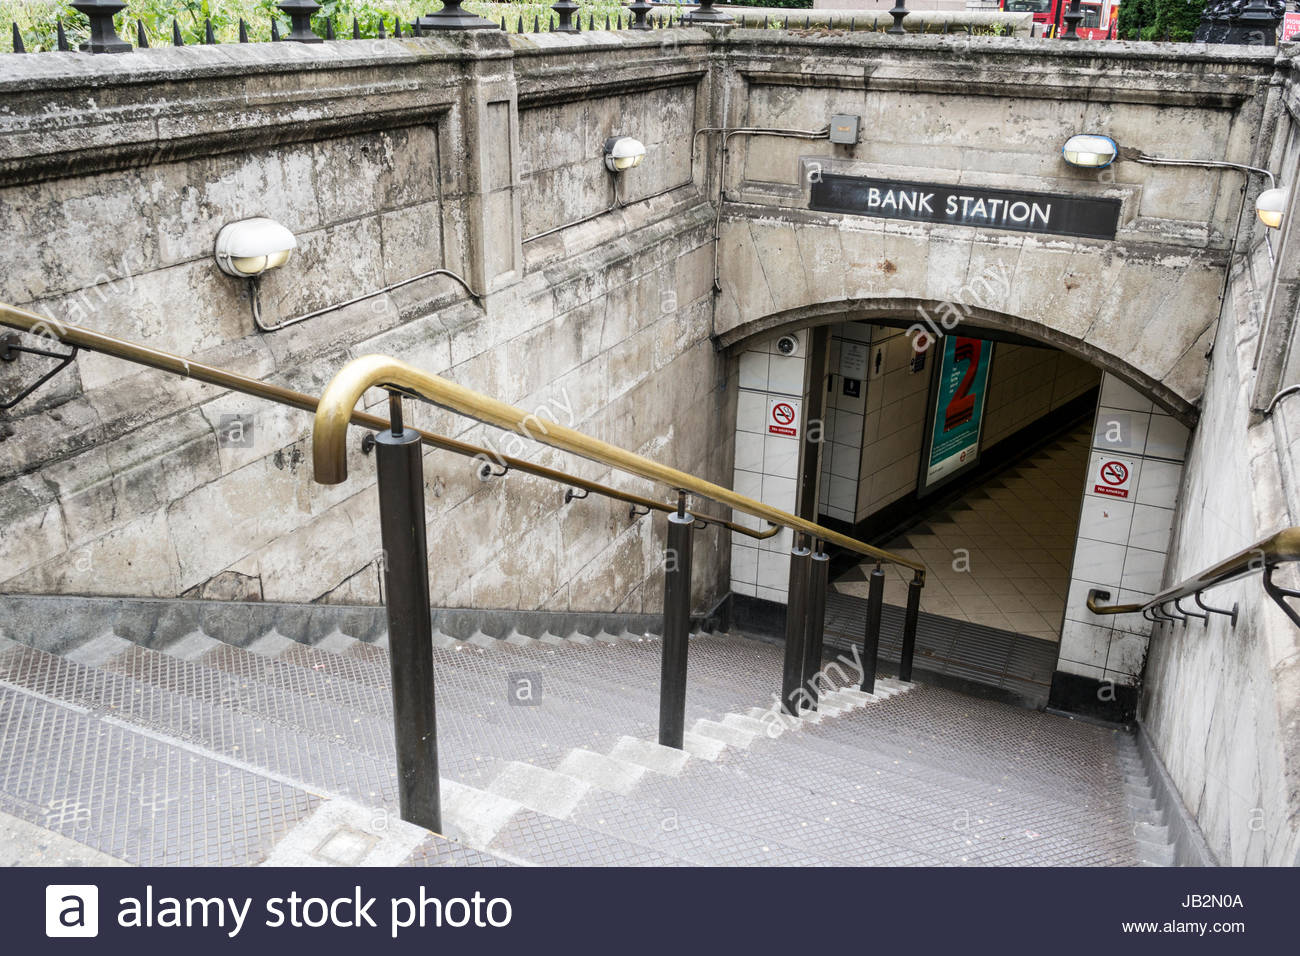 Entrance to Bank Underground Station in the City of London, England, UK - Stock Image